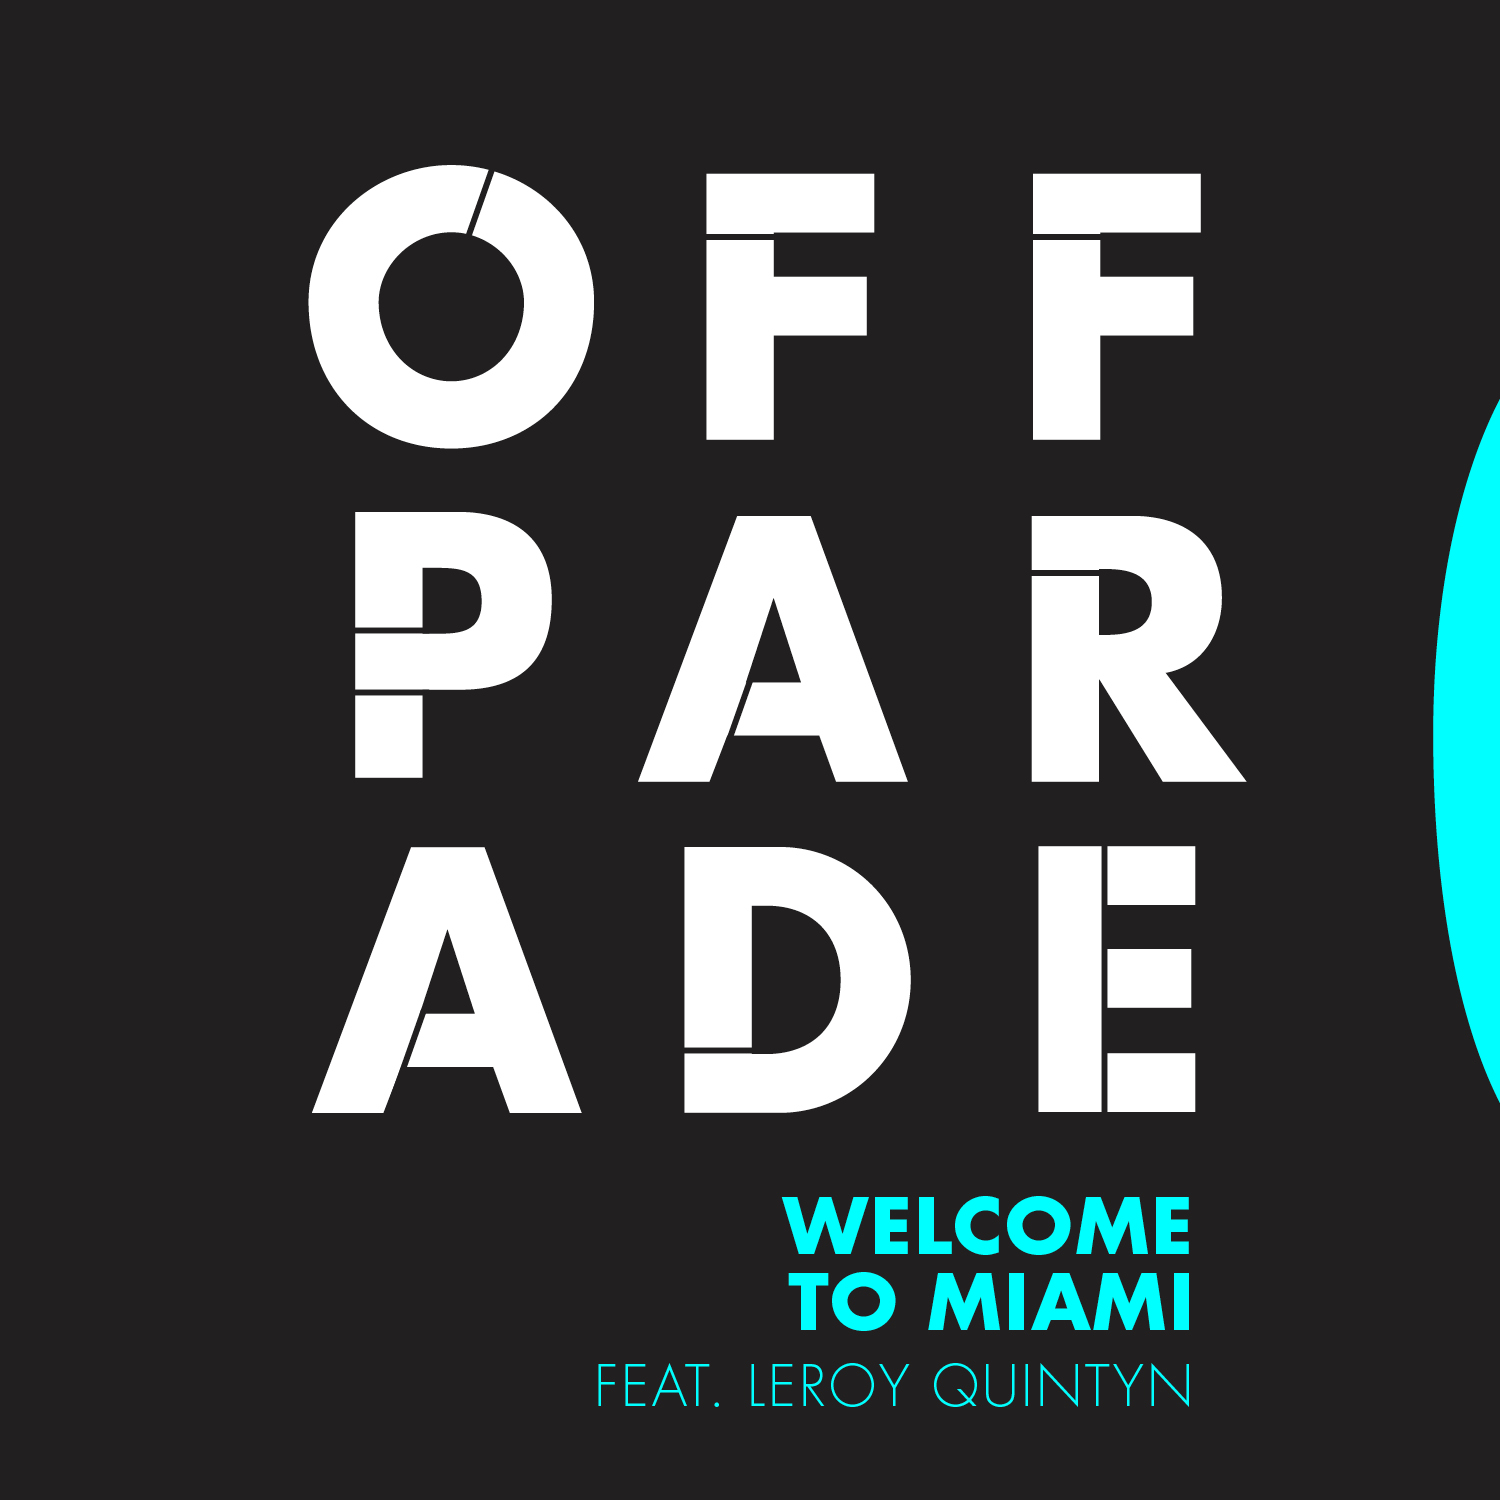 Off Parade Welcome to miami